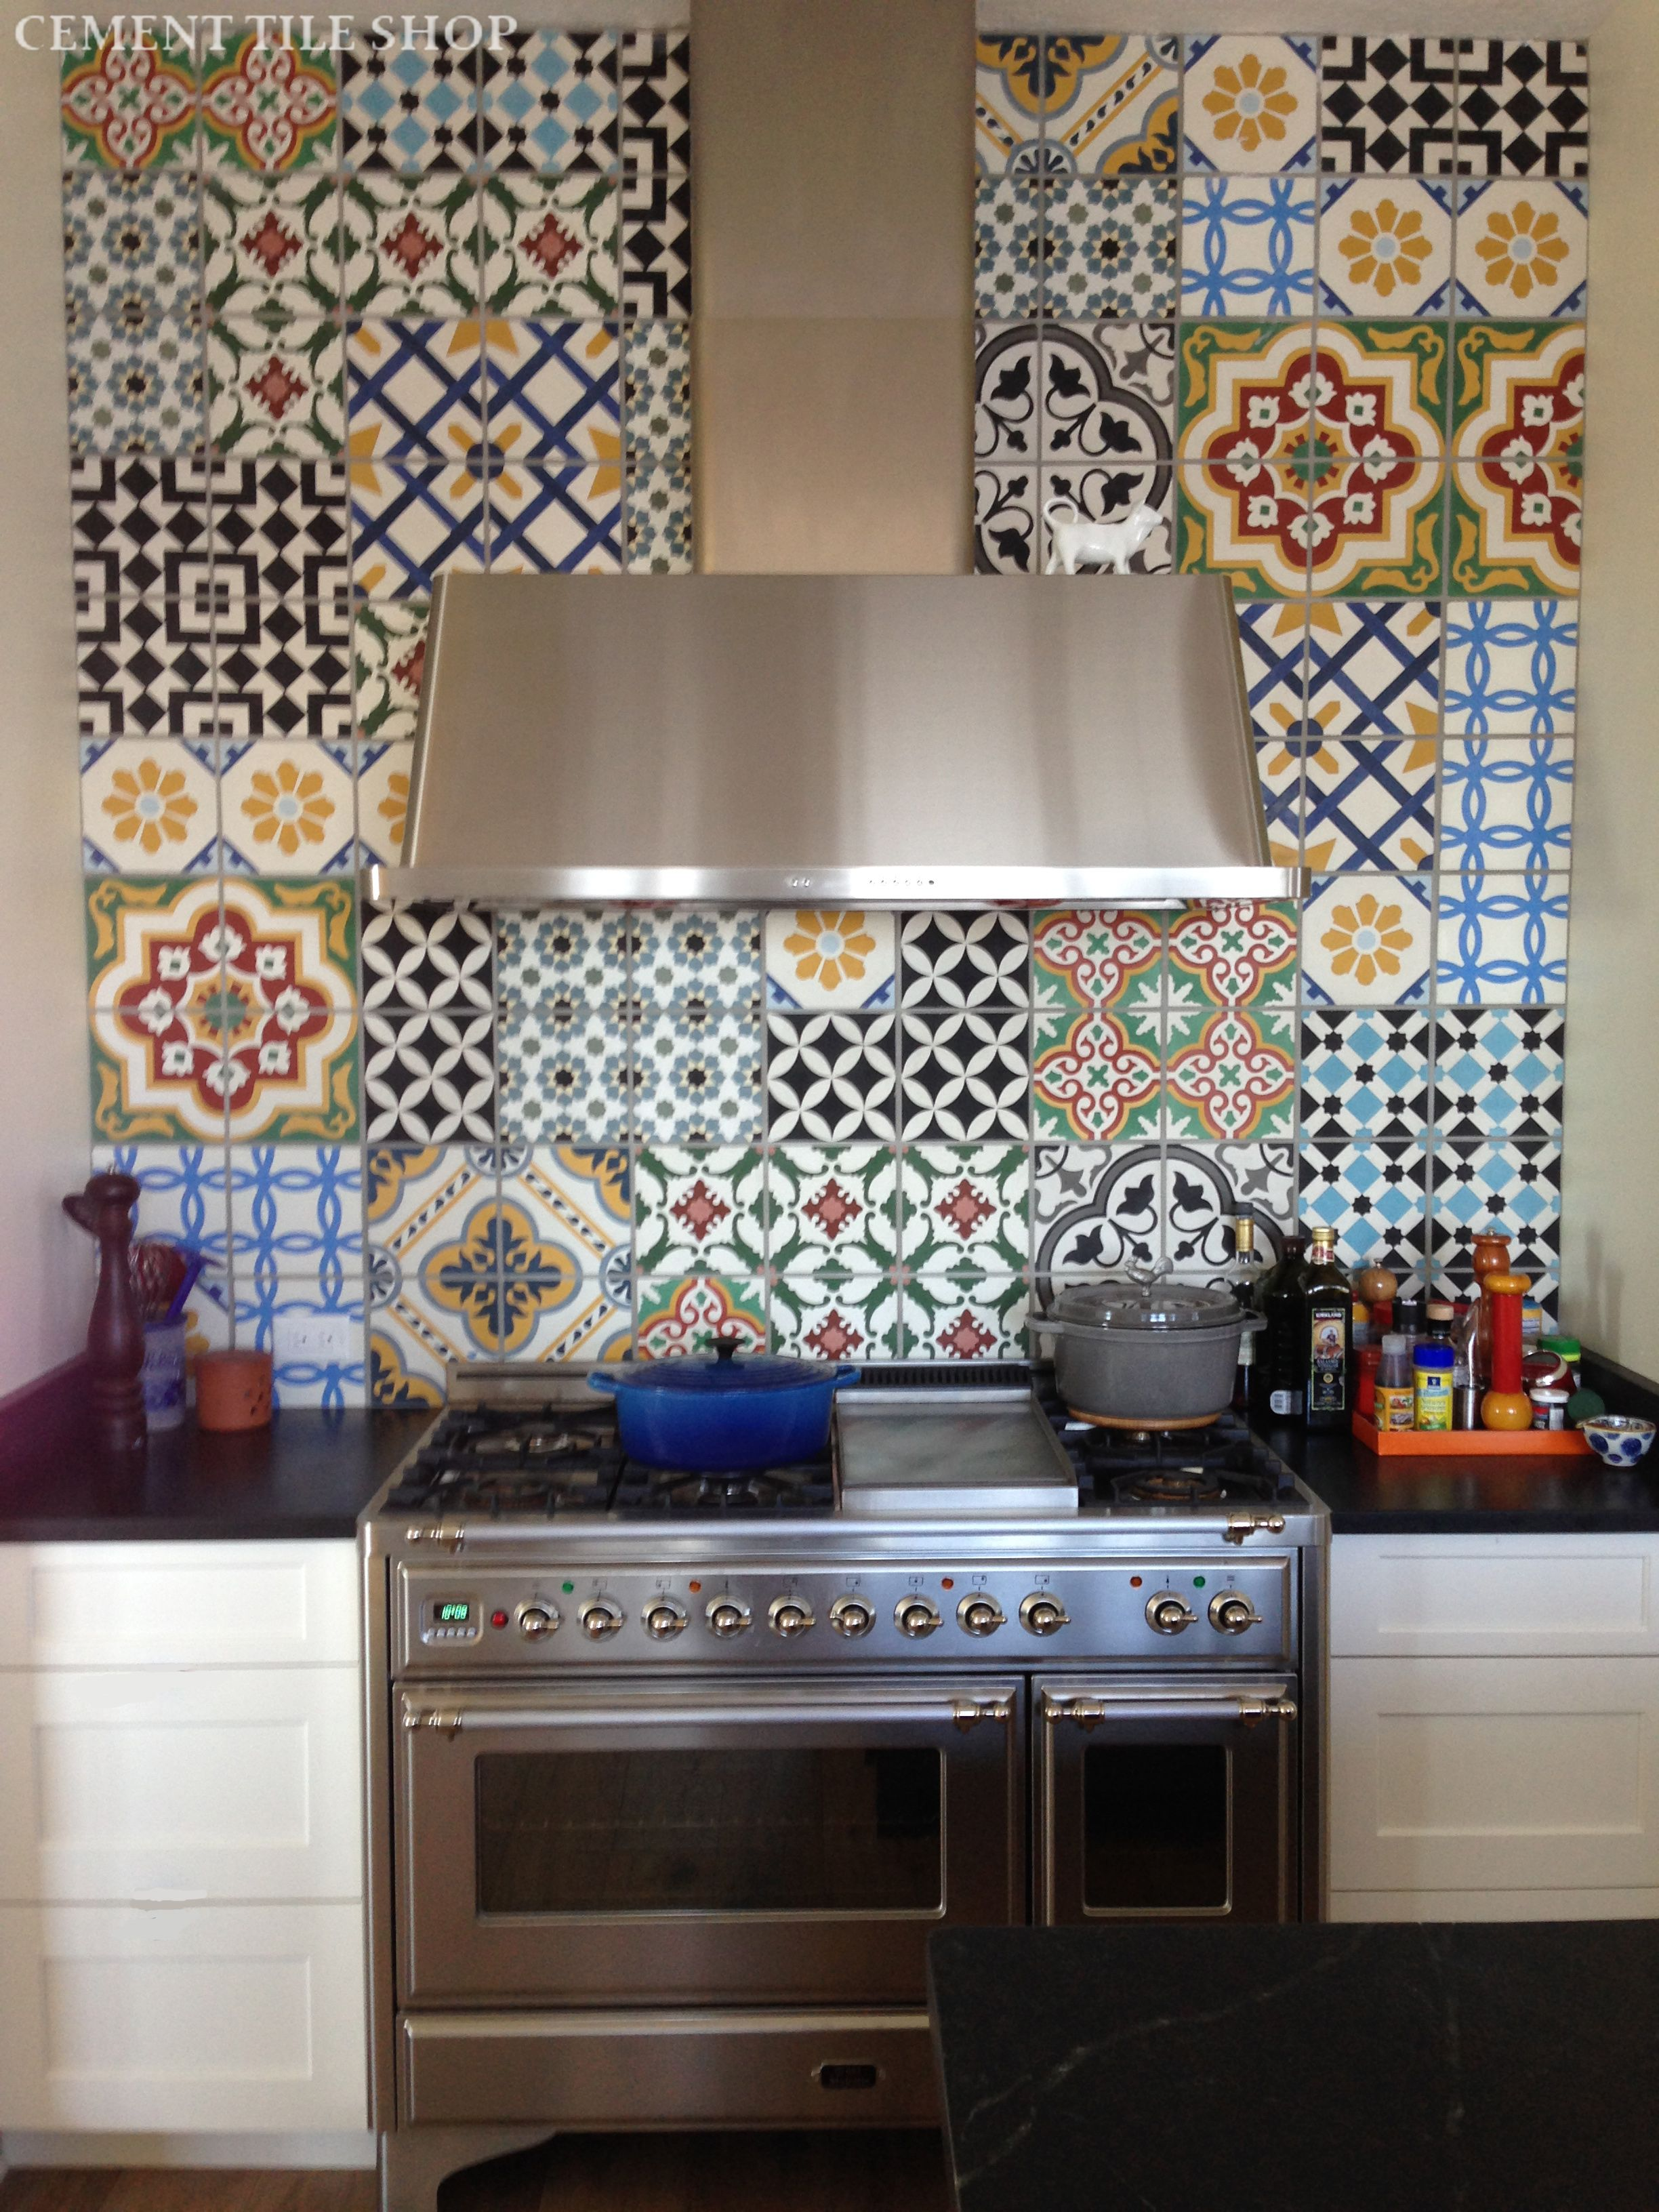 patterned kitchen wall tiles kitchen backsplash cement tile shop 4107